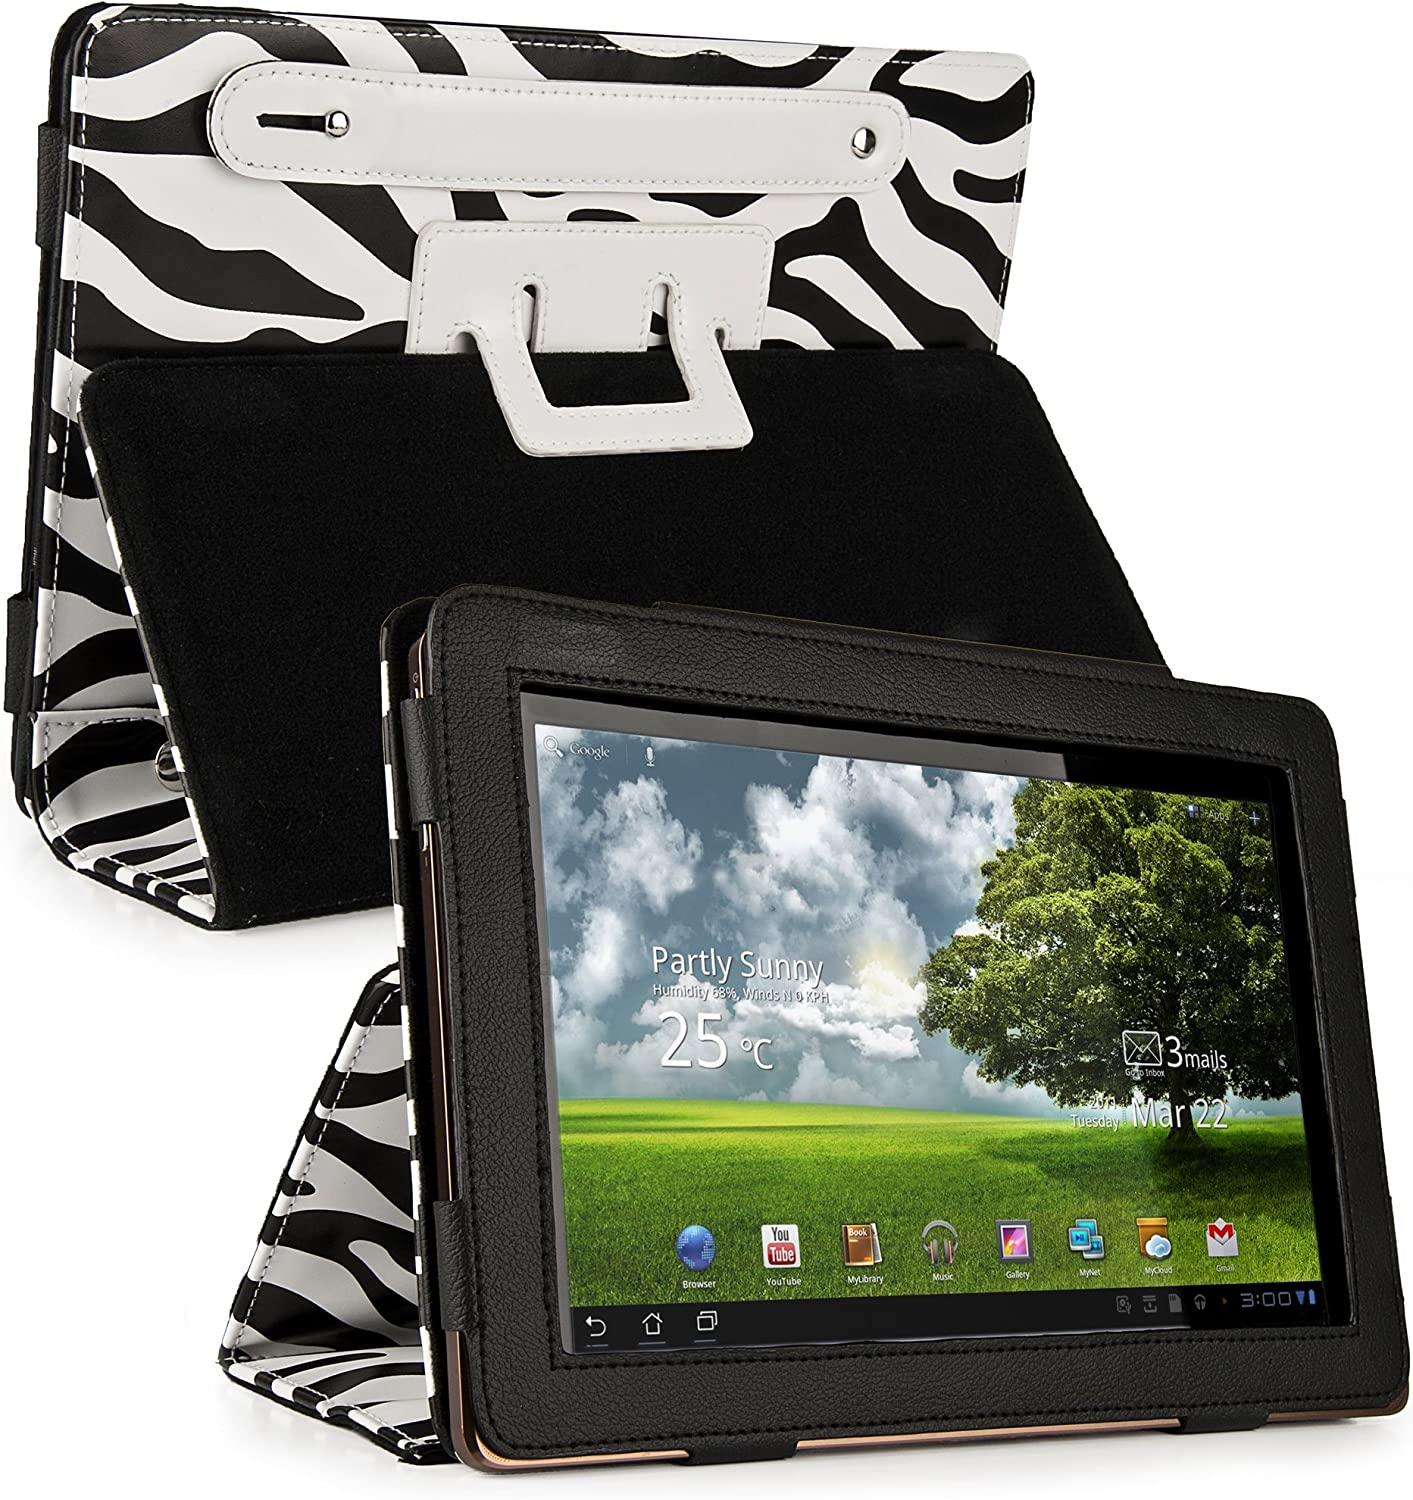 Vangoddy Zebra Animal Print Designer SOHO Smart Cover with Stand and Unique Rear Hand Strap for All Models of the Acer Iconia 10 Inch Tablet Iconia (A200, A500, A510, W500, A500-10S16u, 10.1 inch, A510-10k32u, Titatium Gray)